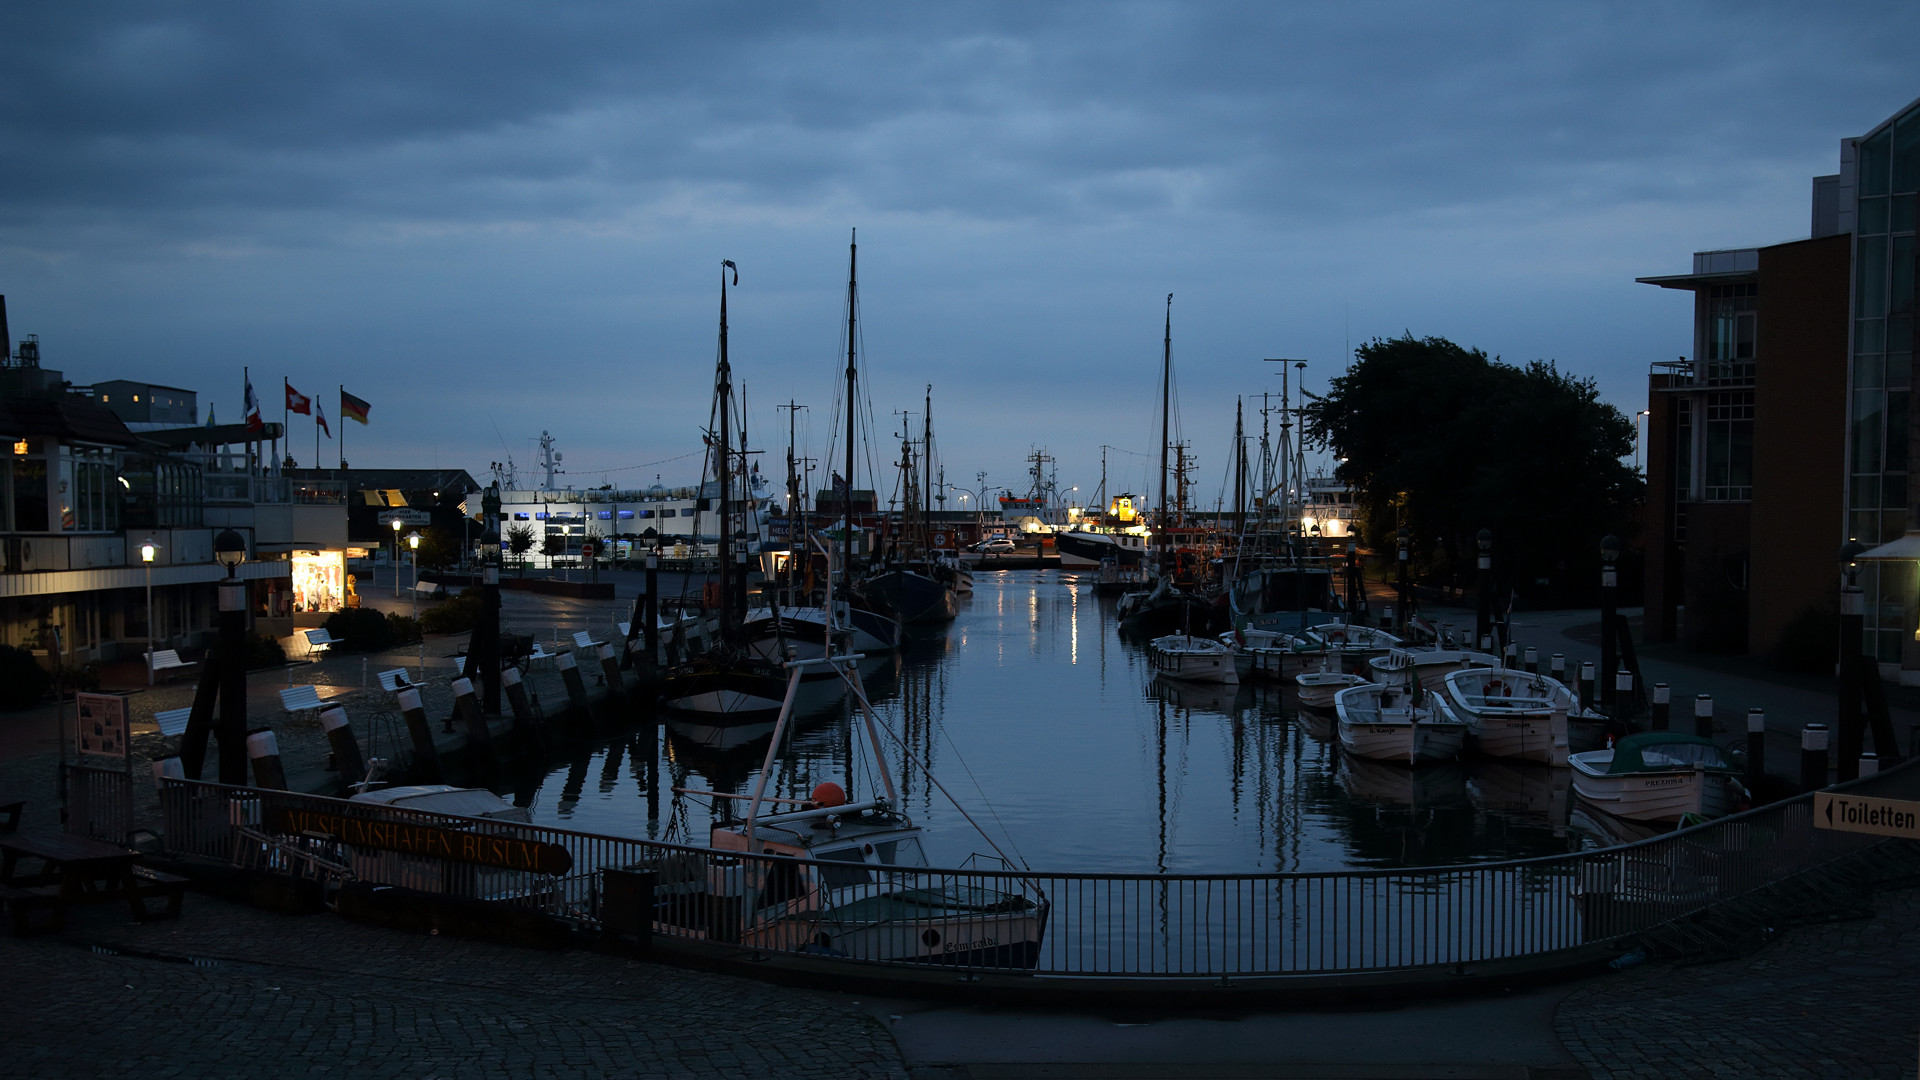 Museumshafen in Büsum am Morgen 01